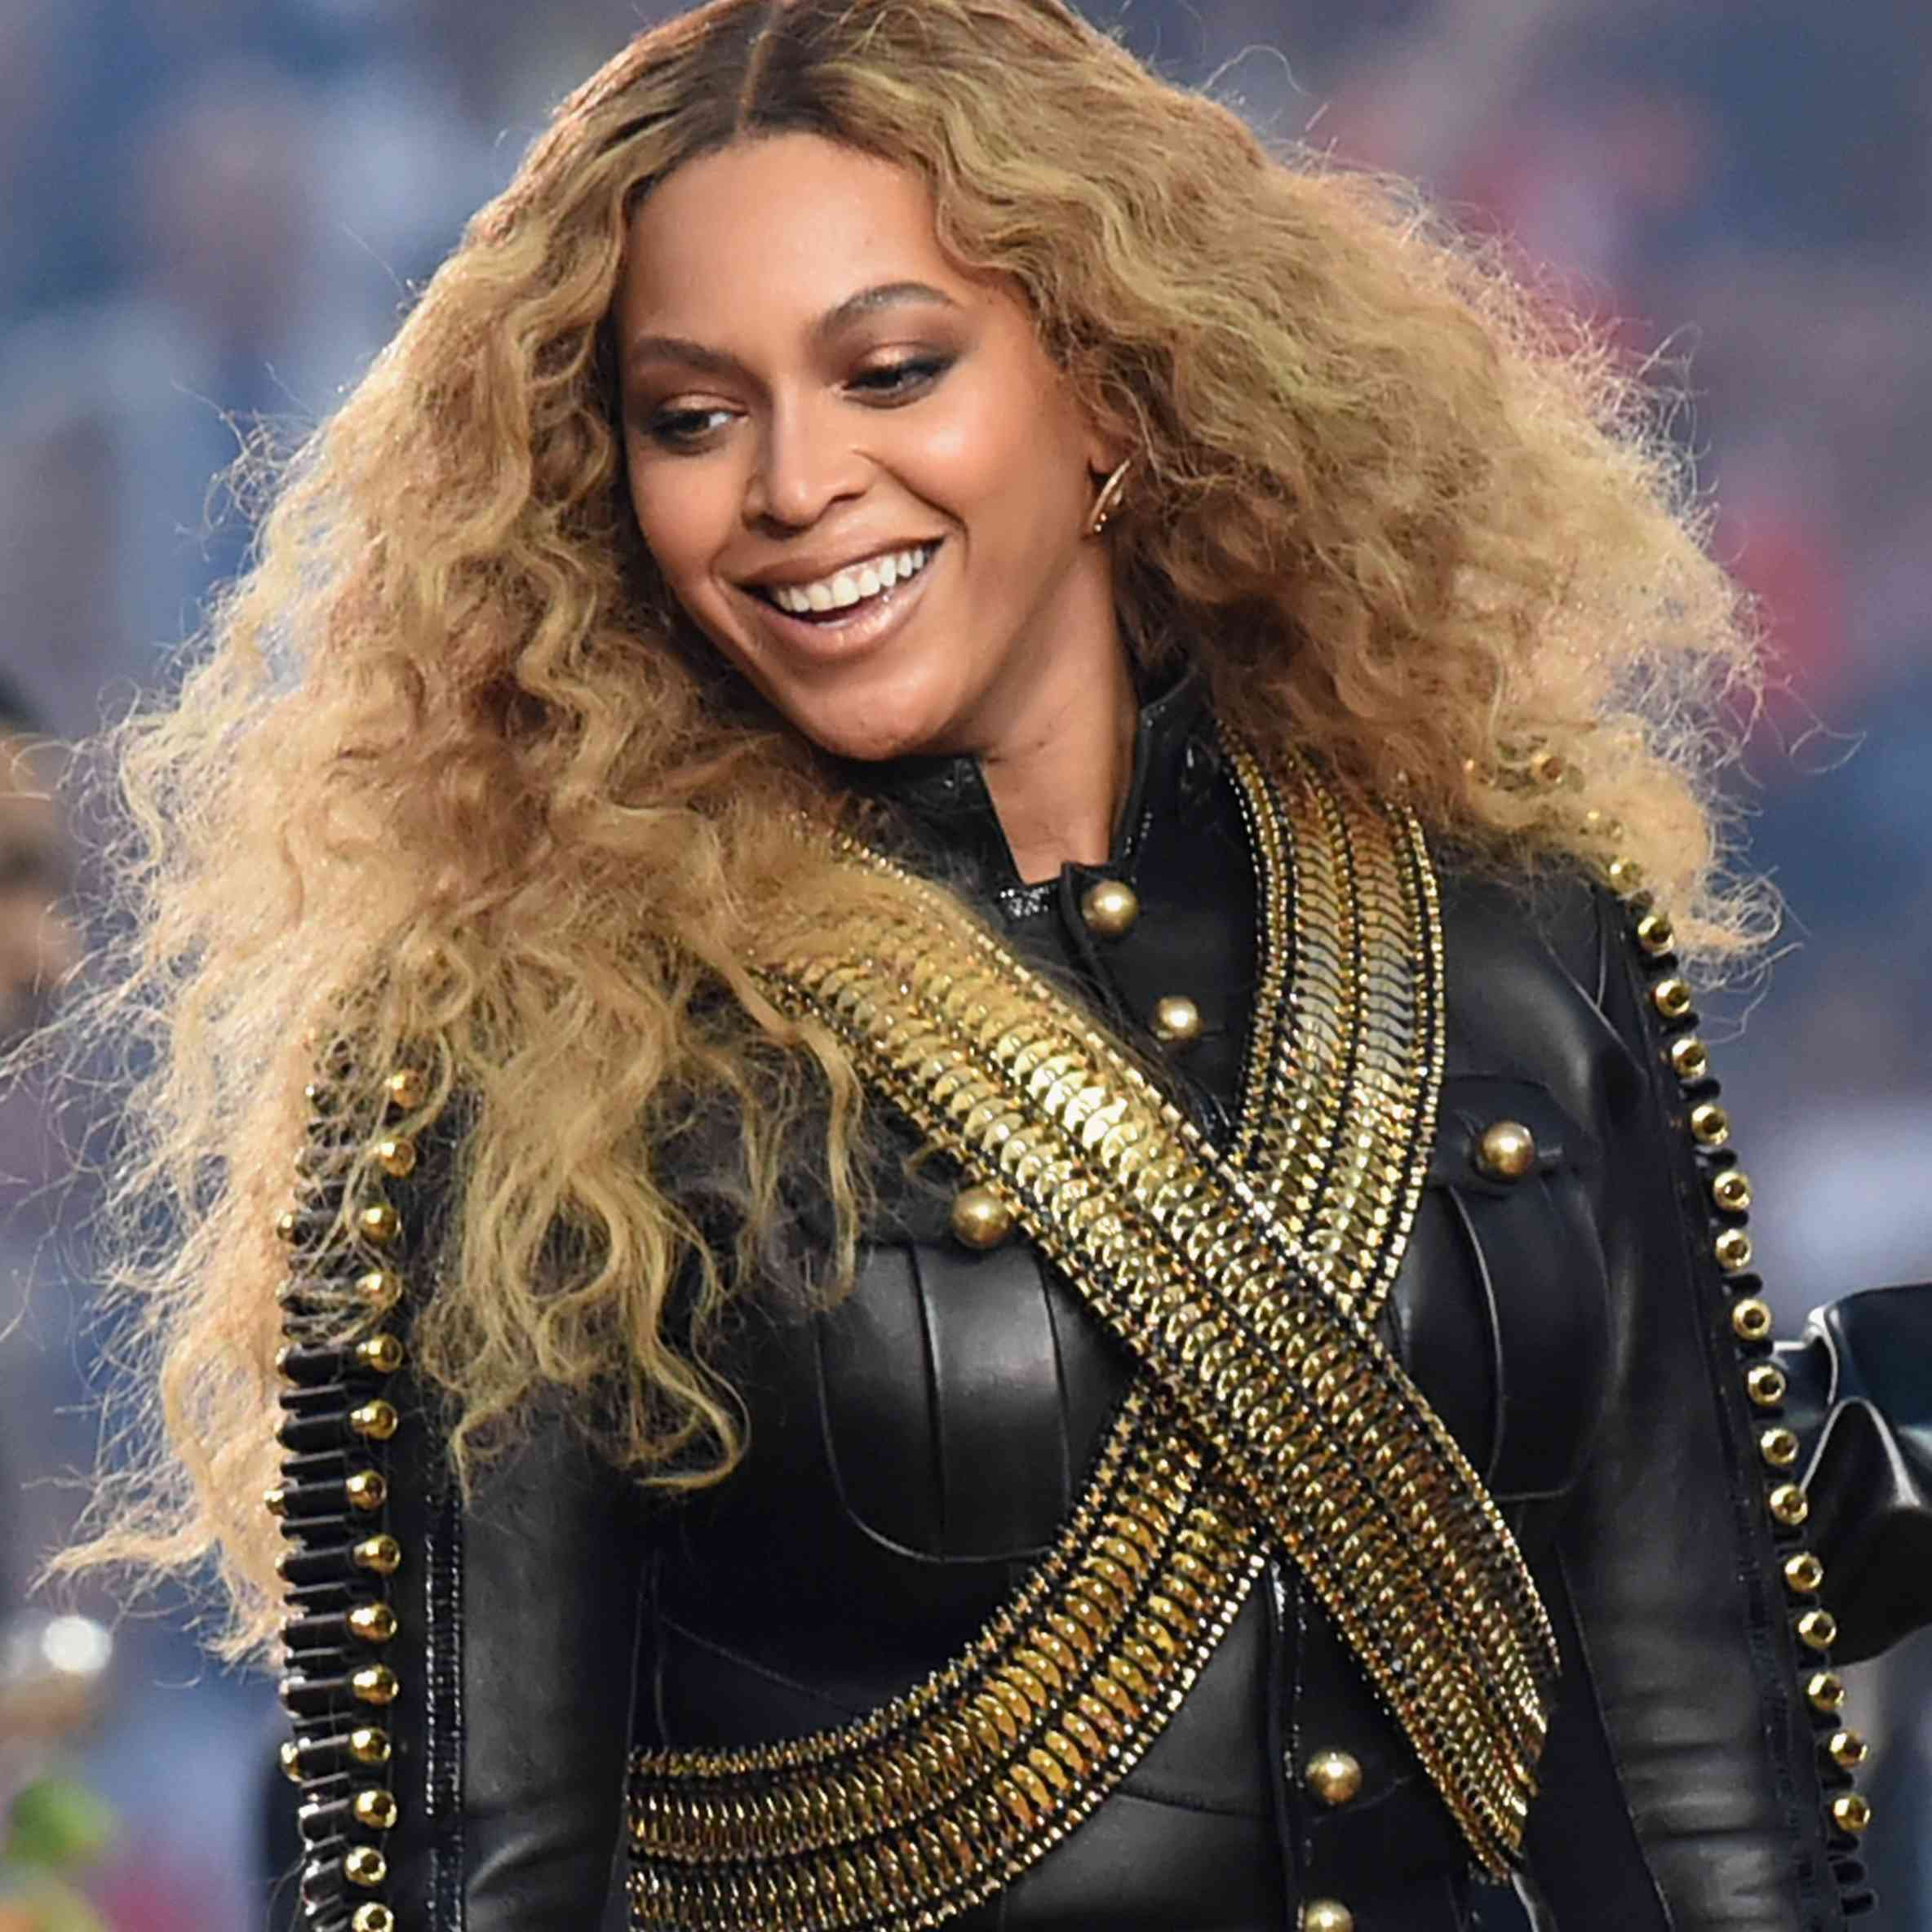 Beyonce in leather jacket and curly hair